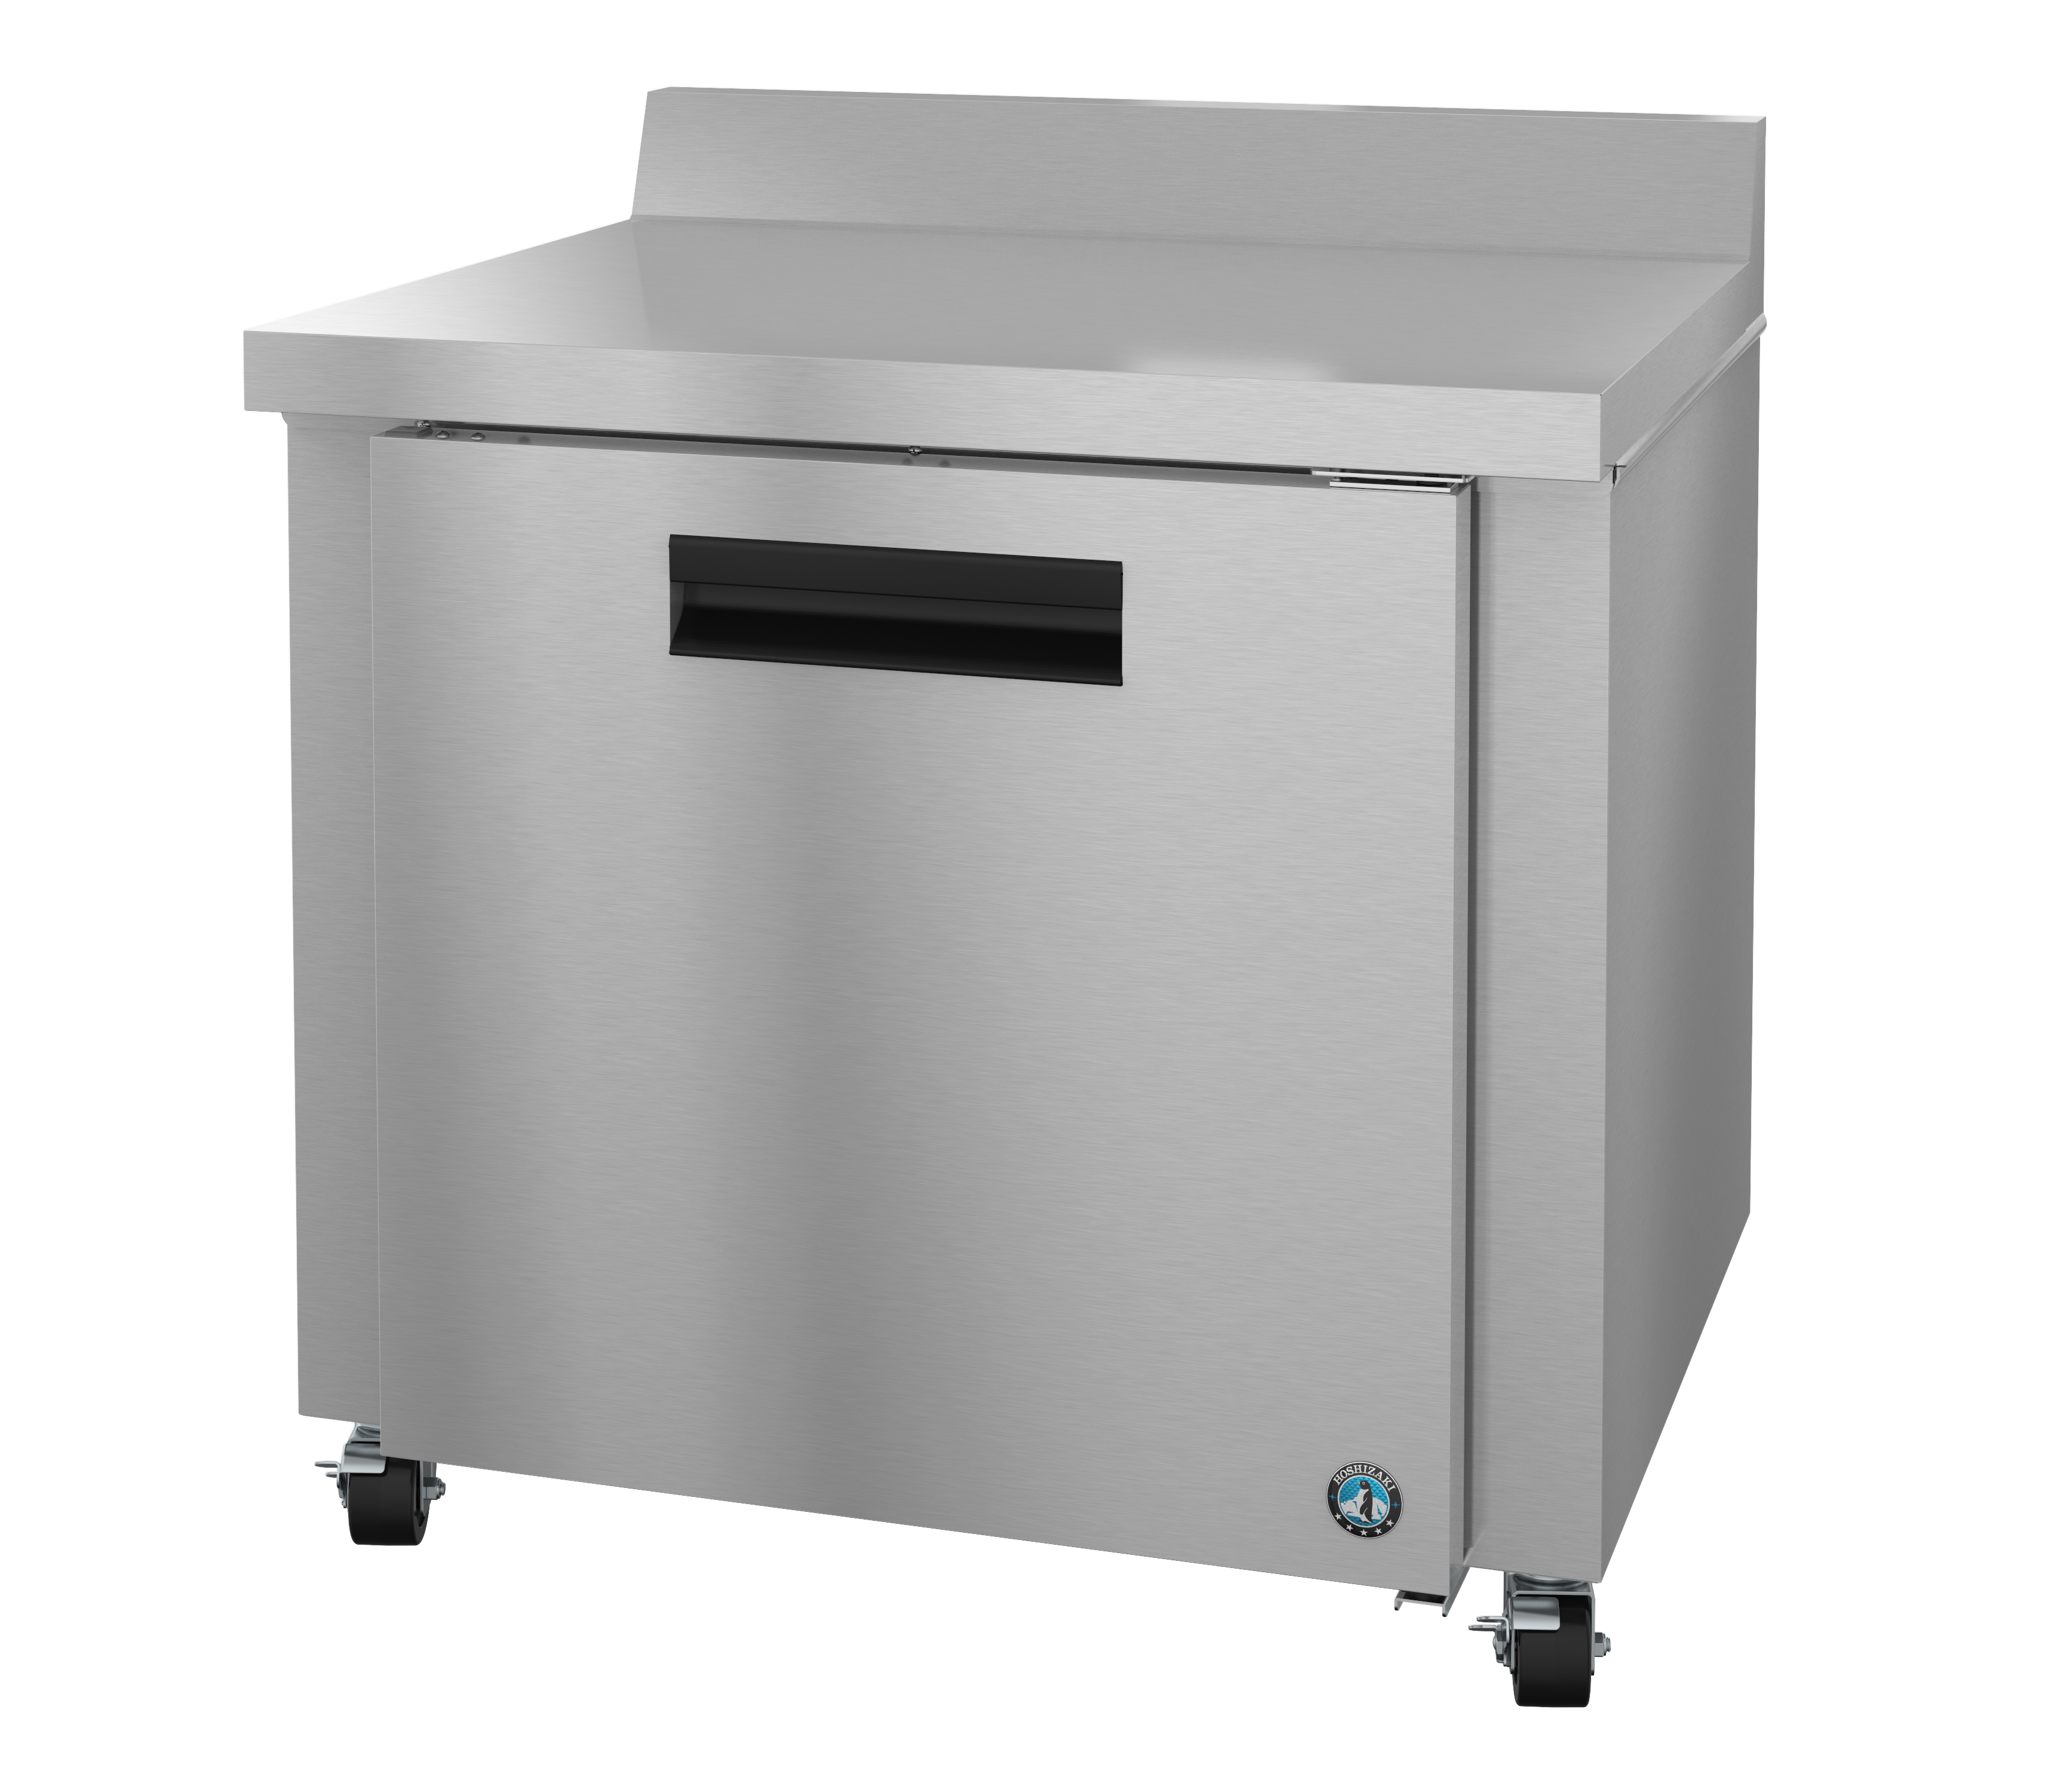 """CRMR36-W-240x230 Product Release: 36"""" Wide Commercial Series Undercounters & Worktops Refrigerators"""